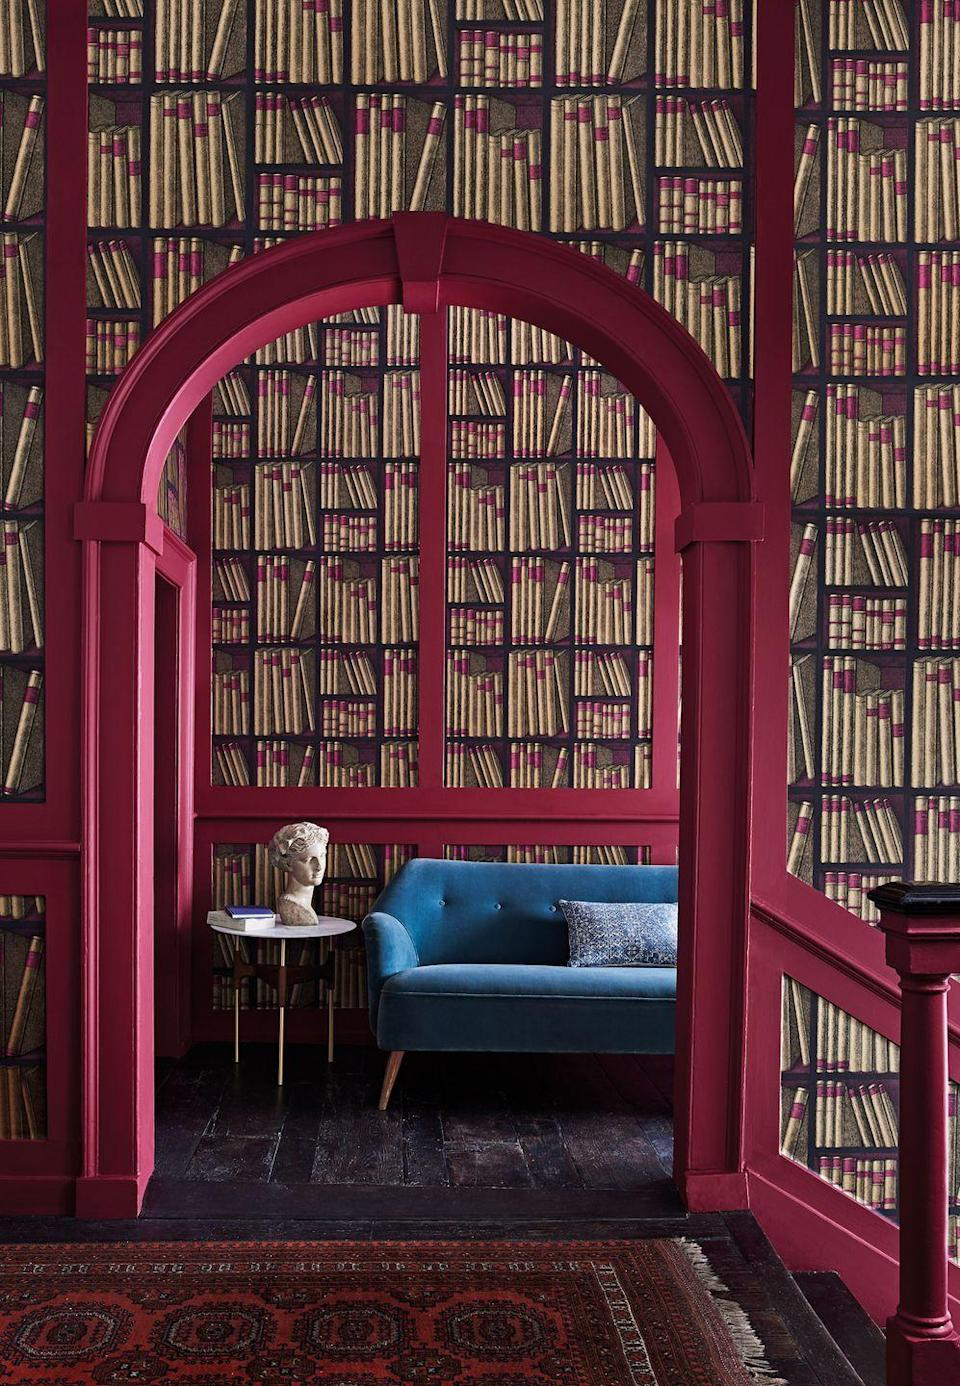 """<p>If you yearn for a library or just love this quirky design, it's been used here to great effect. Using it on the near and far walls leads you in, and it is complemented perfectly with the deep pink woodwork which echoes the spines on the 'books'.</p><p>Top Tip: It would be great in a small space too.</p><p>Pictured: Fornasetti Senza Tempo Ex Libris wallpaper, <a href=""""https://www.cole-and-son.com/en/products/ex-libris-1?v=3861"""" rel=""""nofollow noopener"""" target=""""_blank"""" data-ylk=""""slk:Cole & Son"""" class=""""link rapid-noclick-resp"""">Cole & Son</a></p>"""